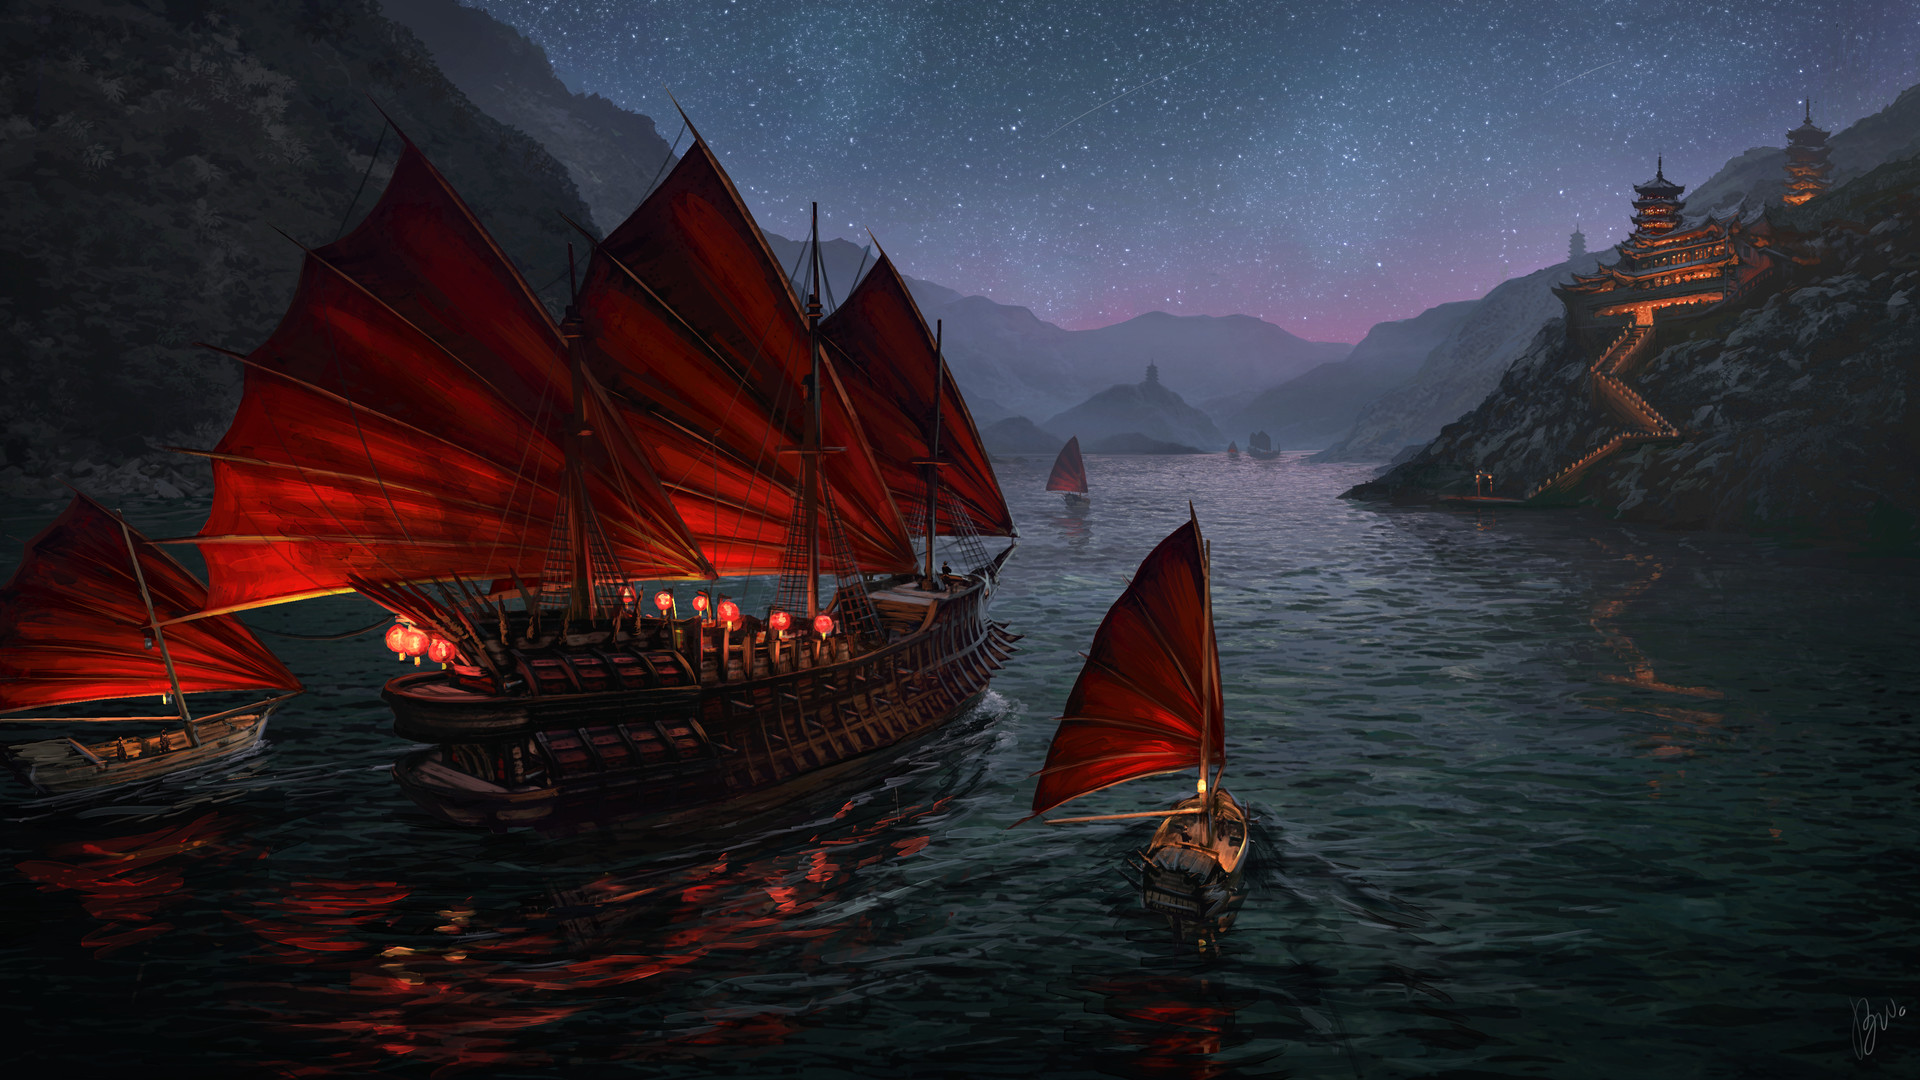 Zhèng Shì and her fleet of junks travelling through the night